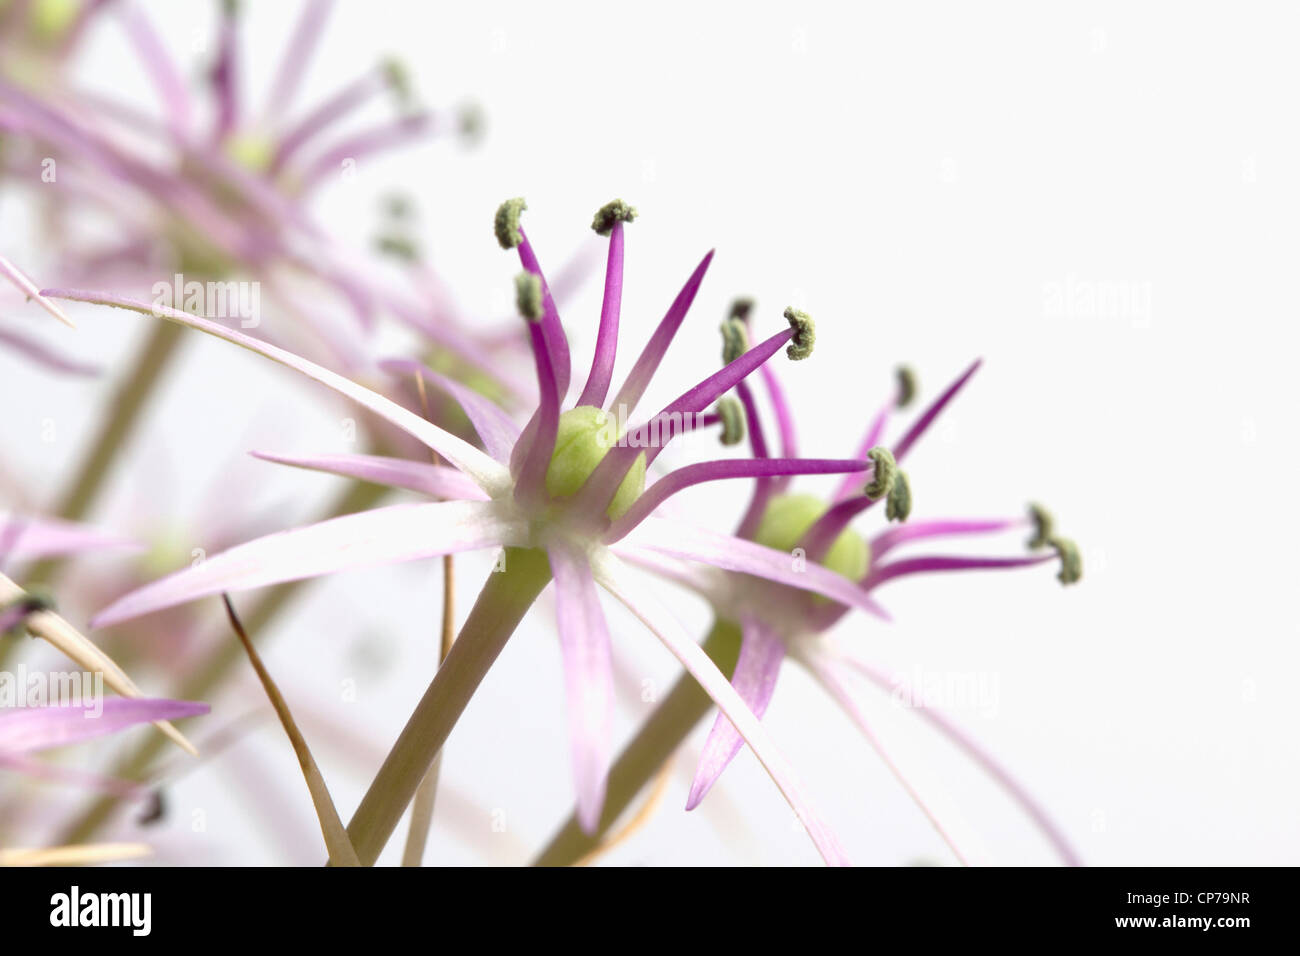 Allium Christophii, Allium, lila, weiss. Stockbild